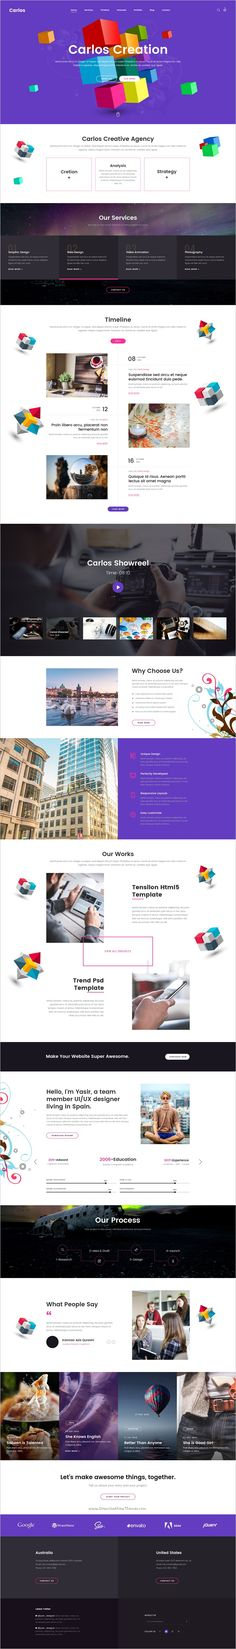 Carlos is a creative #PSD template for #personal or #business websites download now➩ https://themeforest.net/item/carlos-creative-multipurpose-psd-template/19245155?ref=Datasata